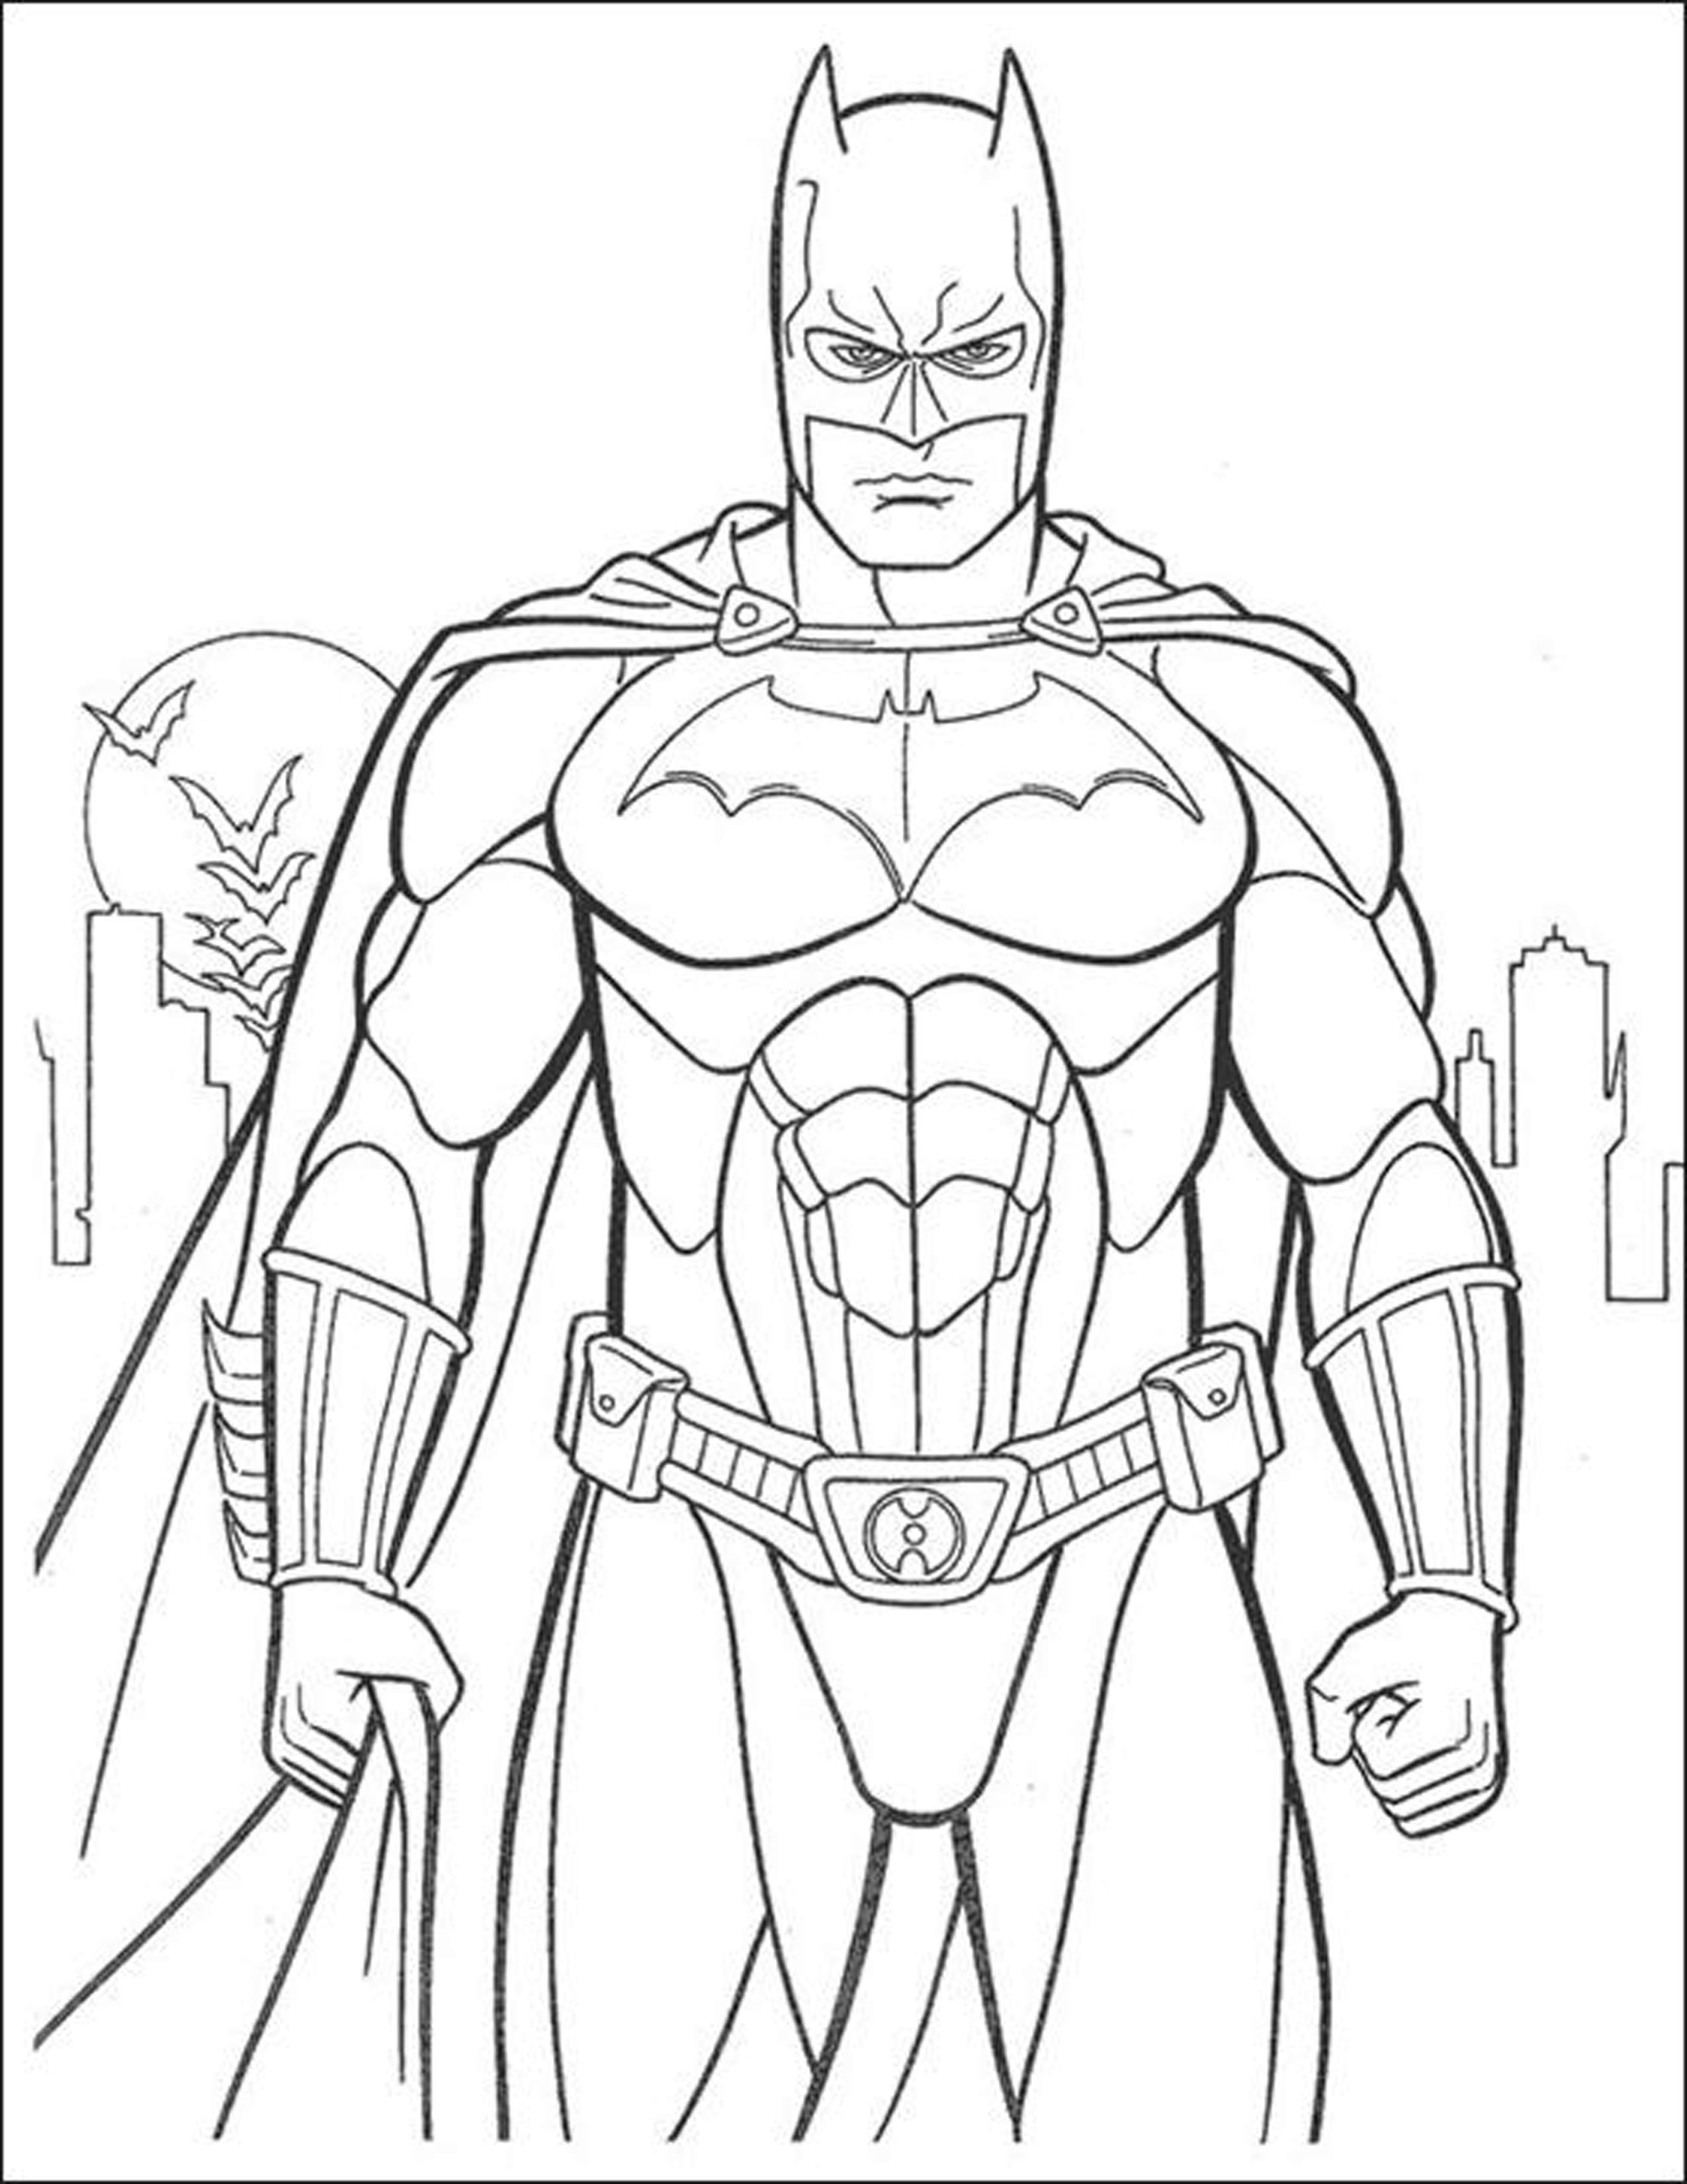 batman drawing coloring pages dark knight coloring pages batman coloring pages comic drawing batman pages coloring